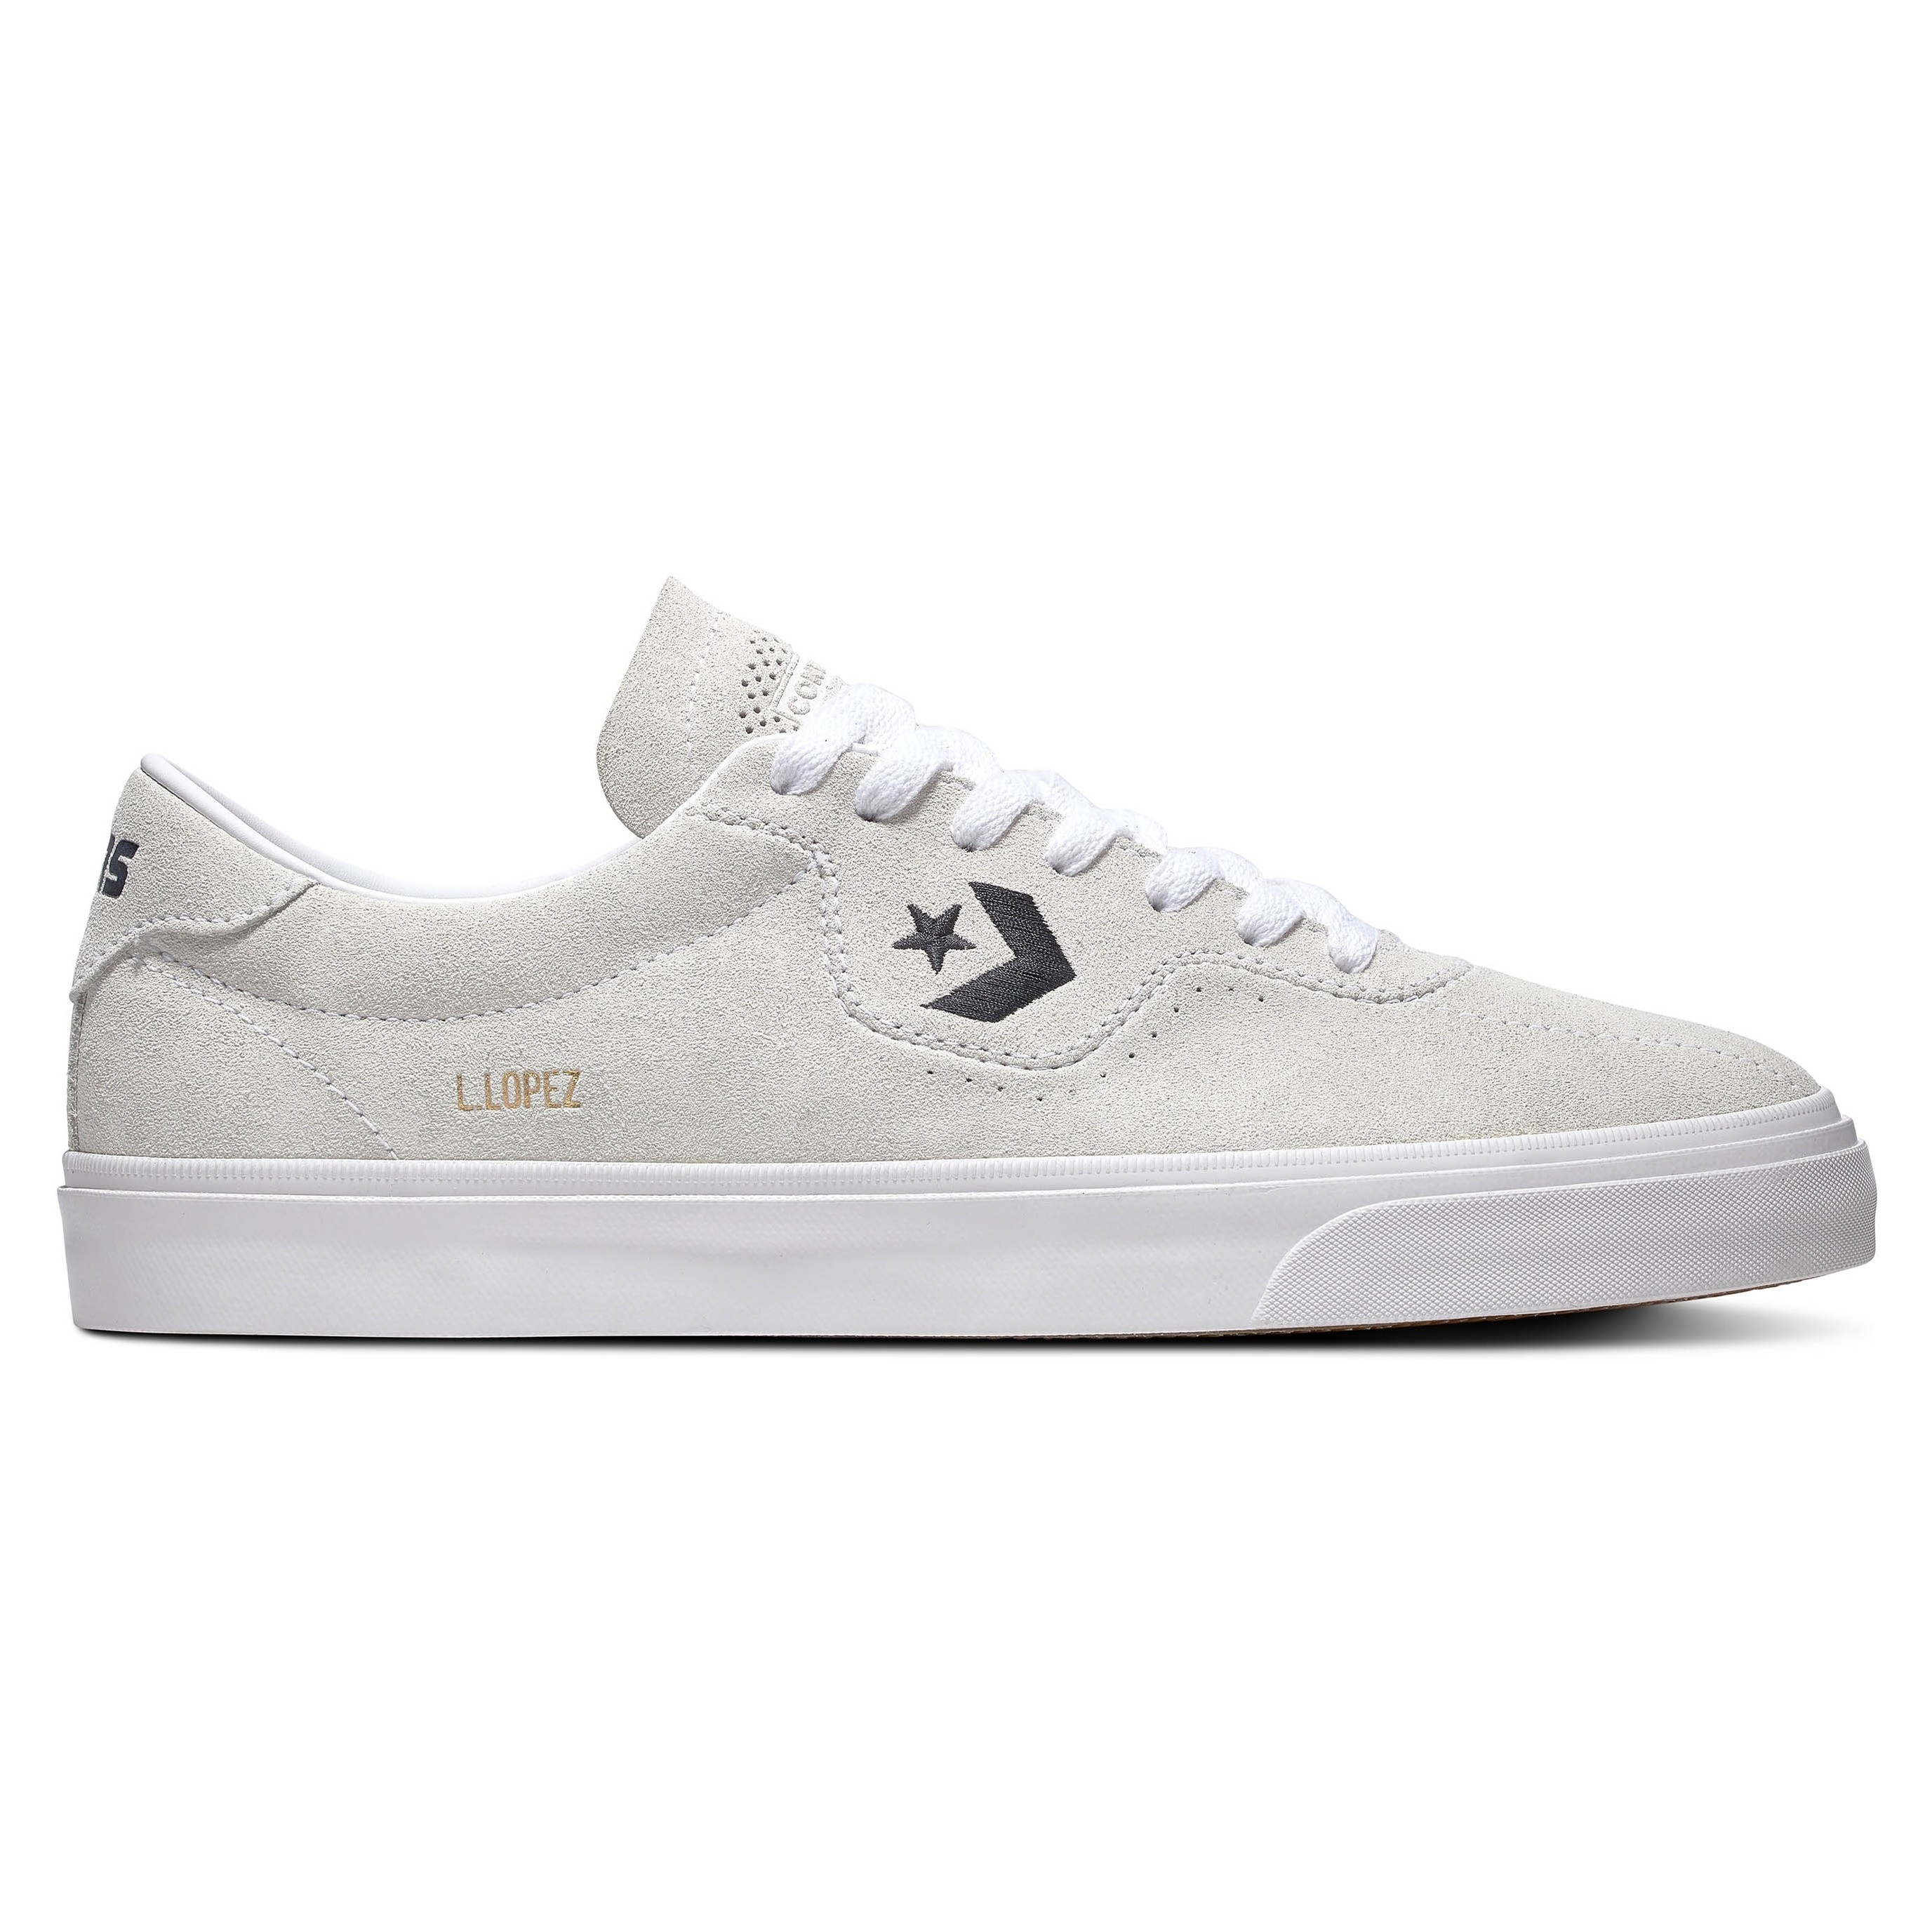 Louie Lopez Pro Ox (White/White/Black)